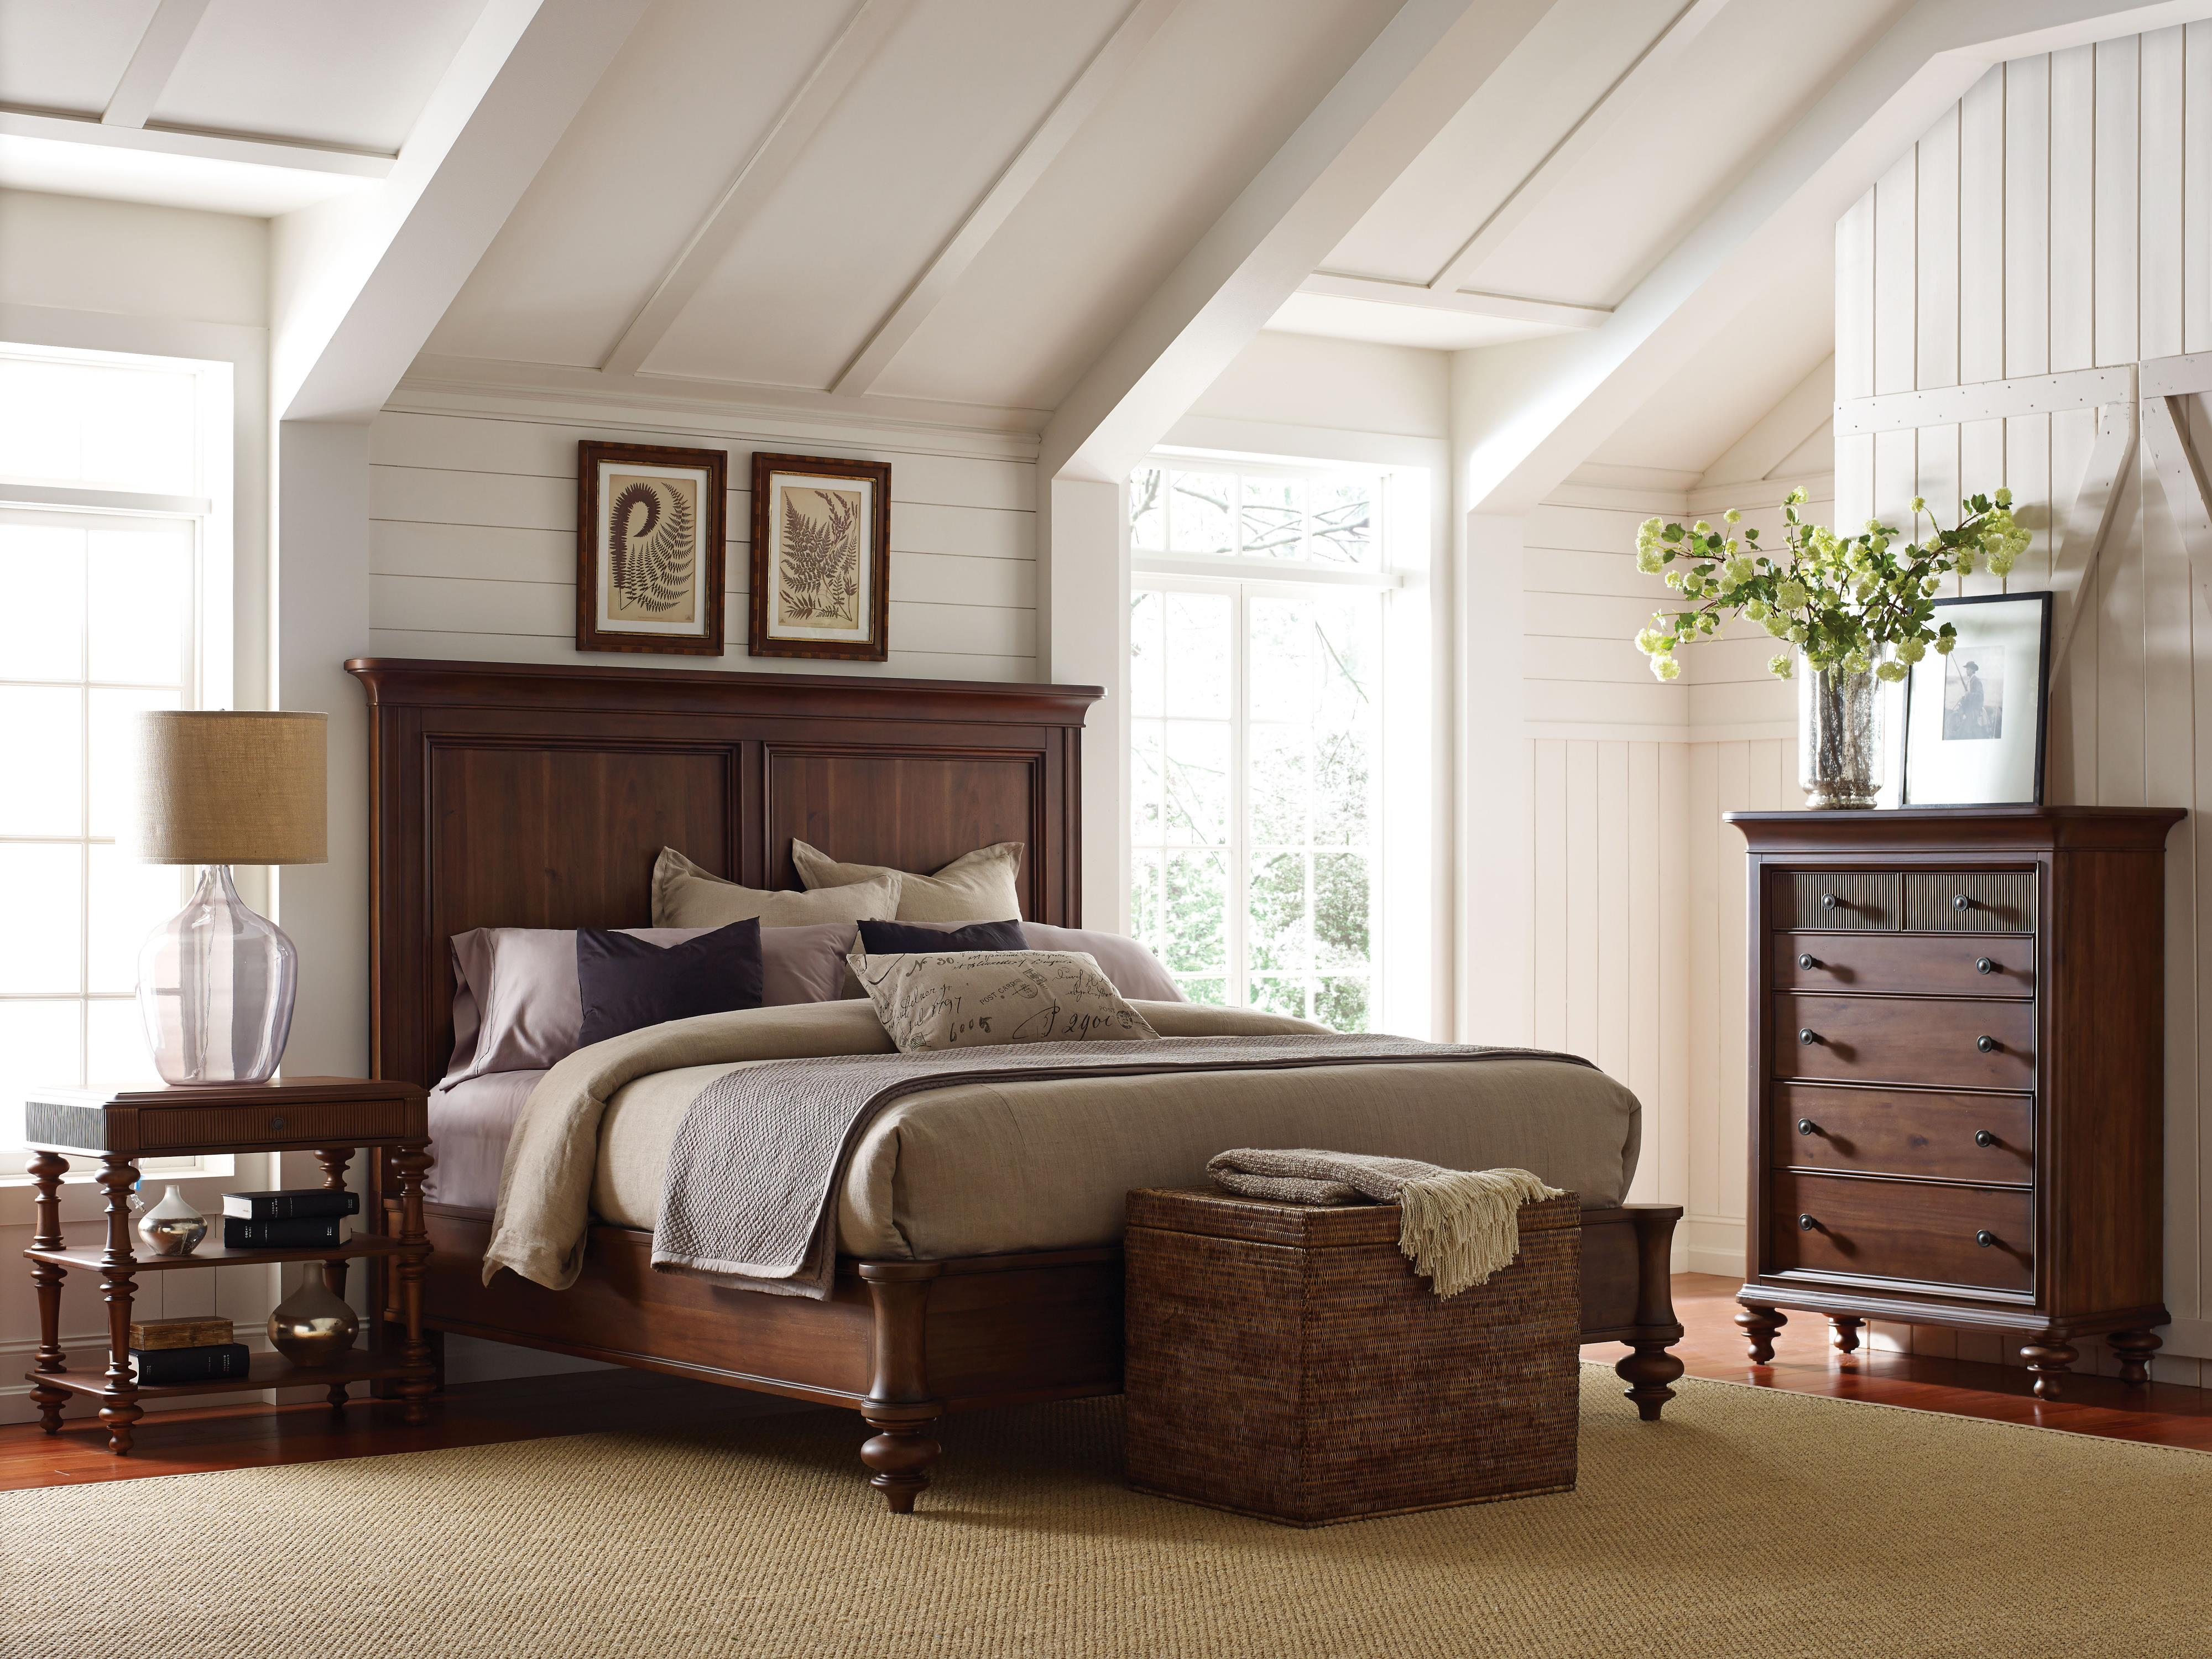 Broyhill Furniture Cascade Queen Bedroom Group - Item Number: 4940 Q Bedroom Group 2